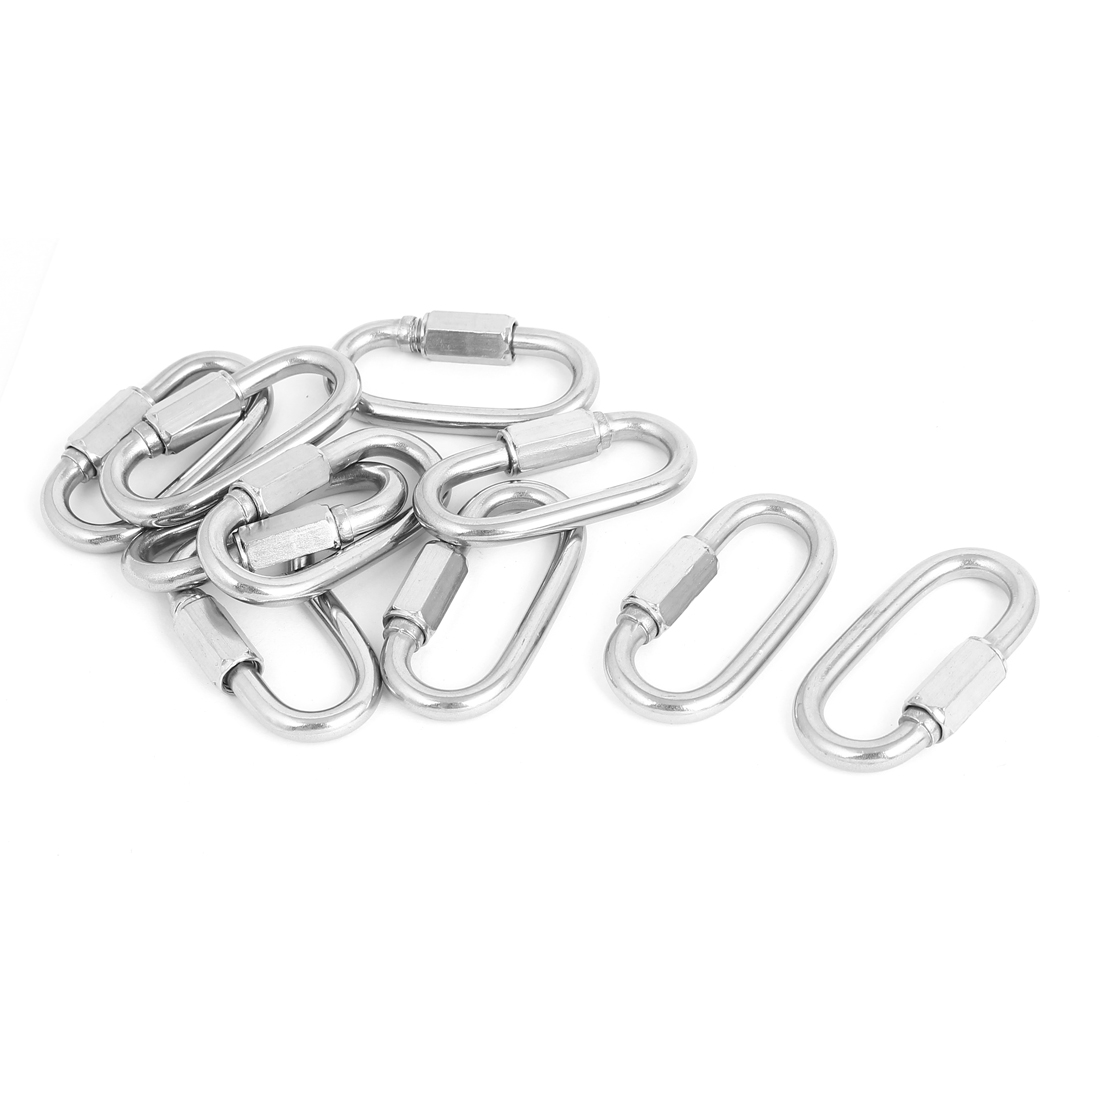 6mm Thickness Stainless Steel Quick Oval Screwlock Link Lock Carabiner 10 Pcs